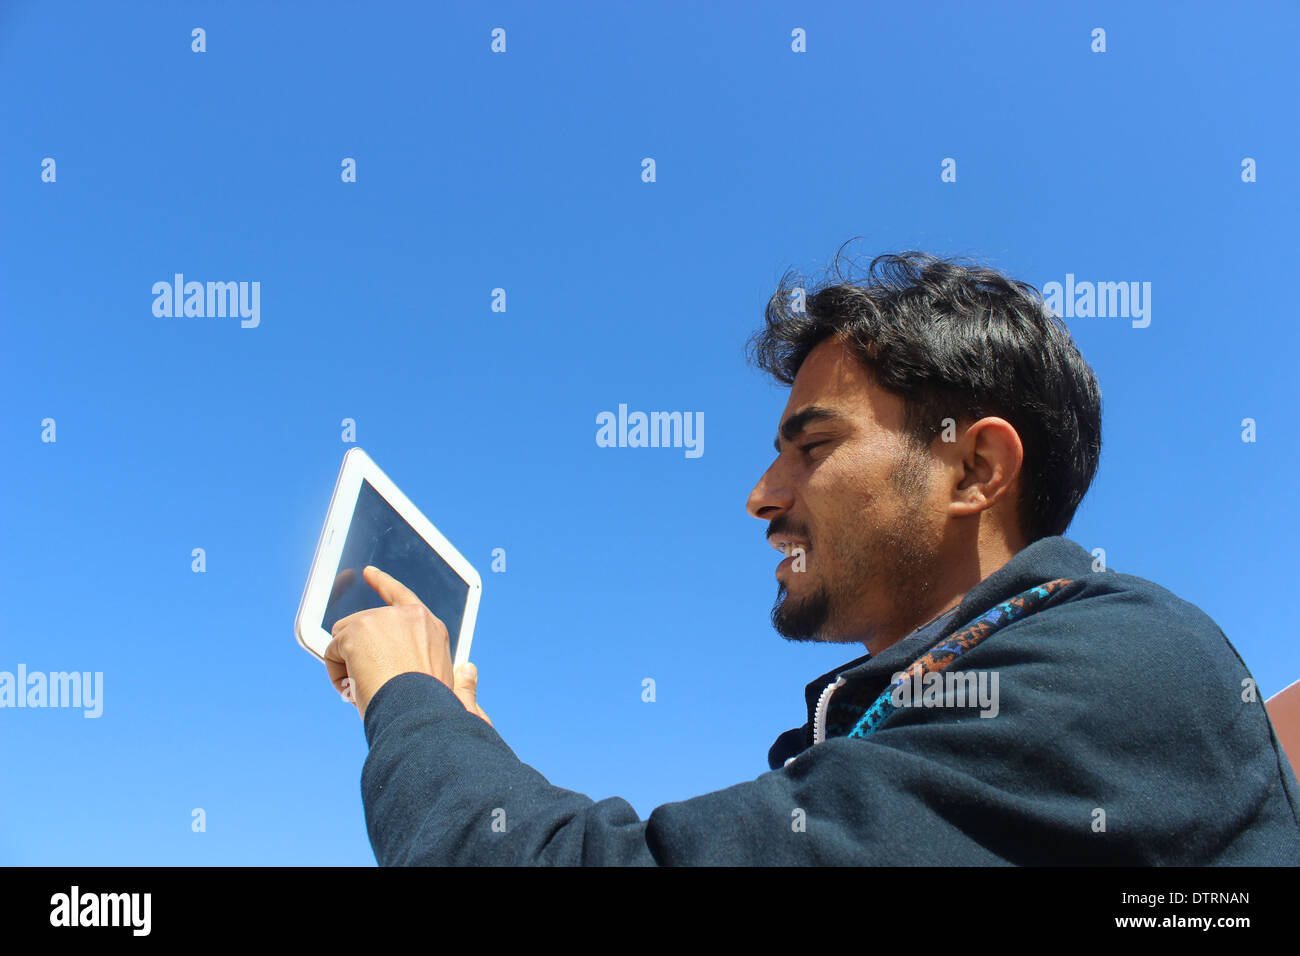 Young man with tablet - Stock Image